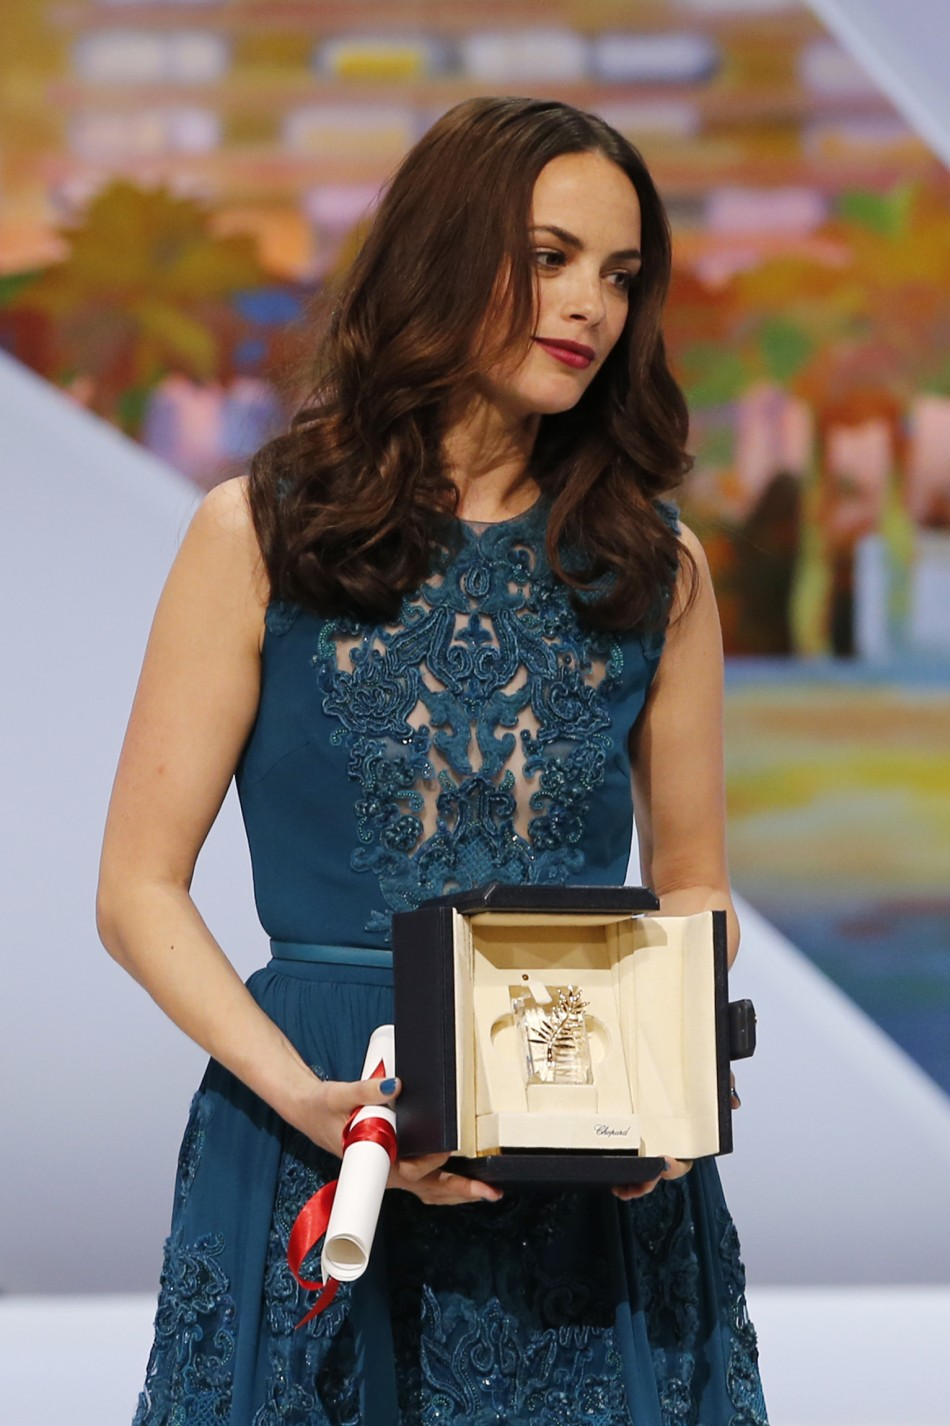 Actress Berenice Bejo, Best Actress award winner for her role in the film Le Passe The Past, poses on stage during the closing ceremony of the 66th Cannes Film Festival in Cannes May 26, 2013.